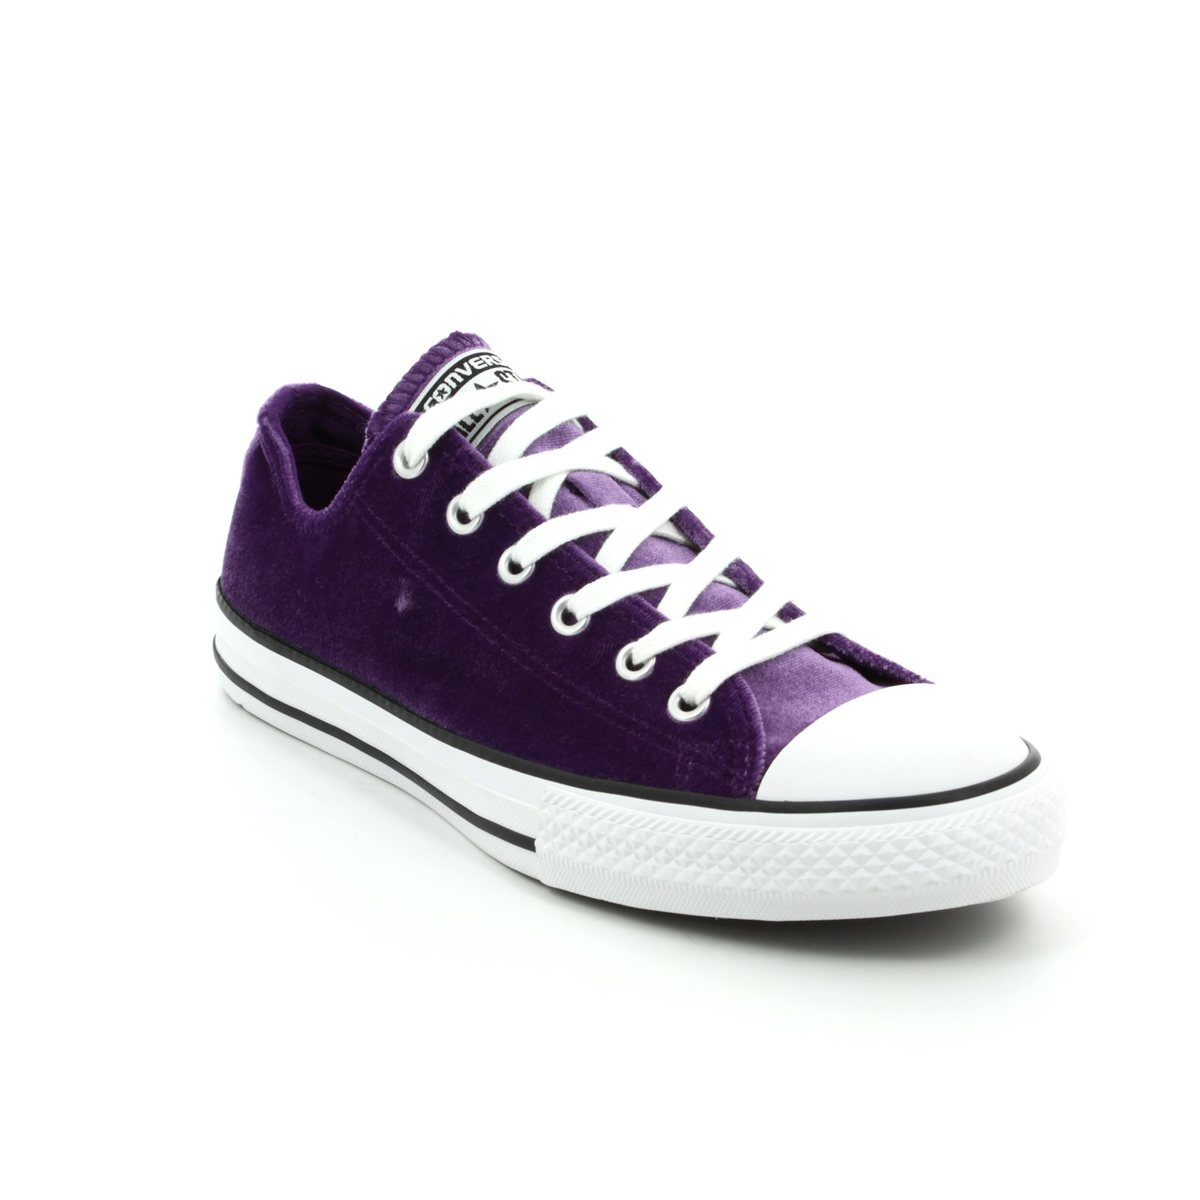 596851798b0c Converse Trainers - Violet - 658211C Chuck Taylor ALL STAR OX JNR